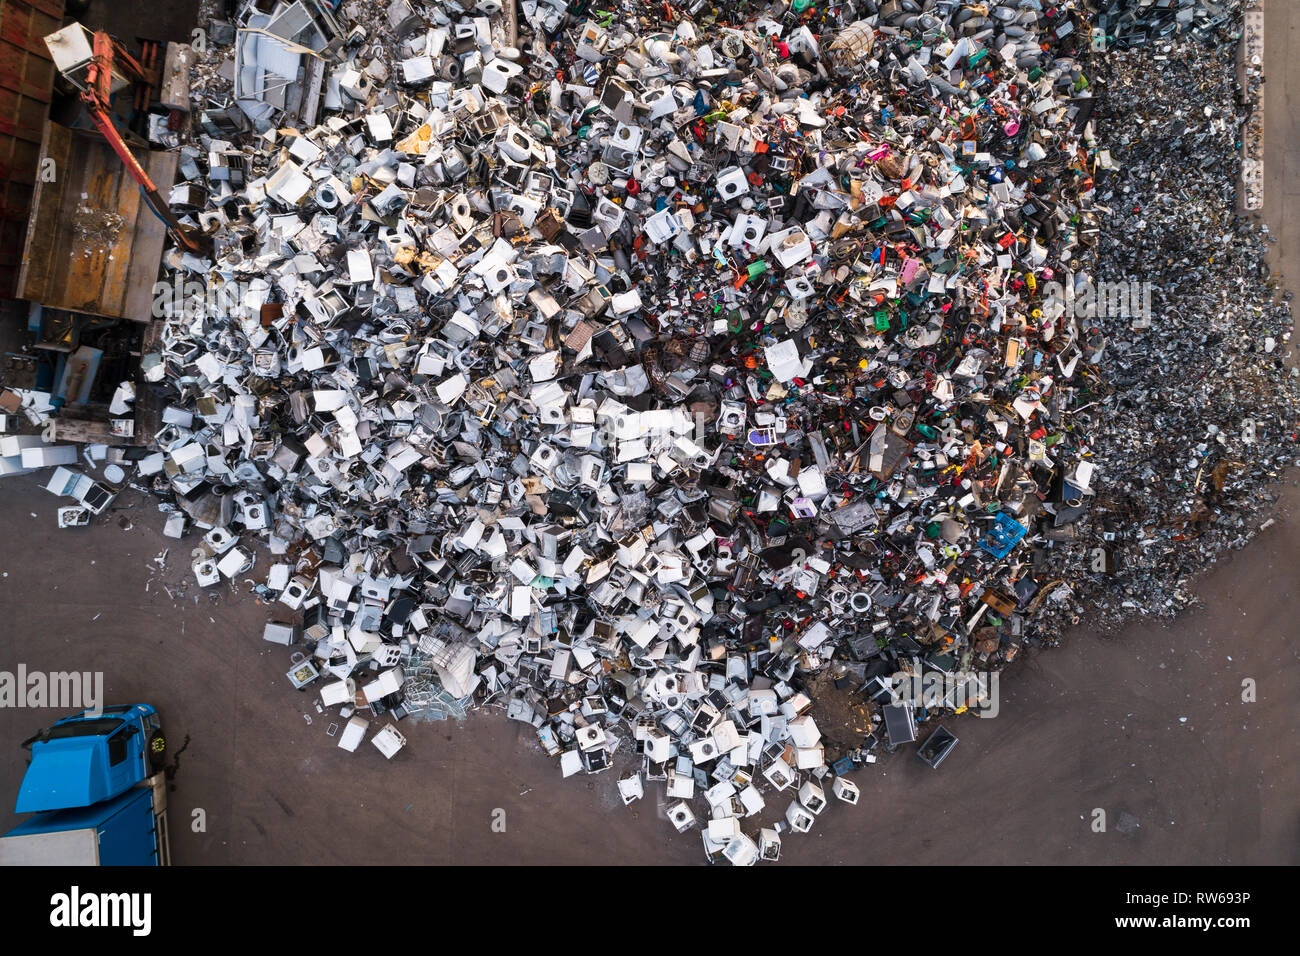 Aerial image looking directly down on a scrap yard in Perth, Perthshire, Scotland. - Stock Image